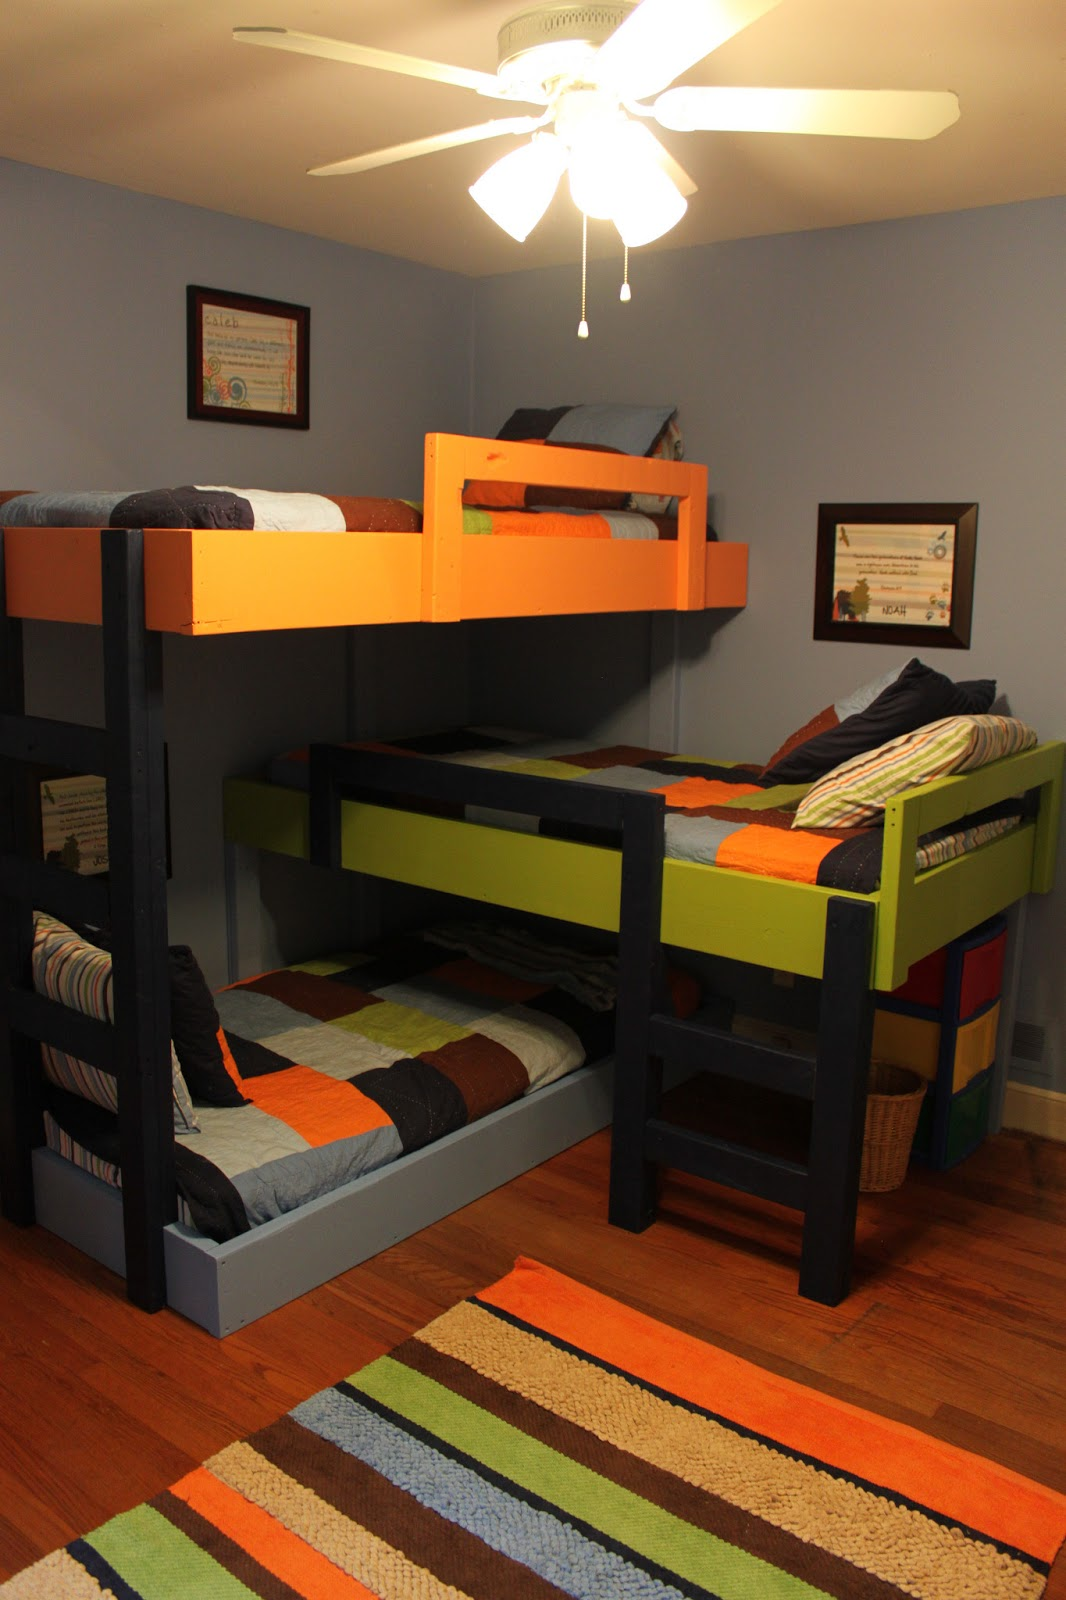 Custom Bunk Beds custom triple bunk beds : pics